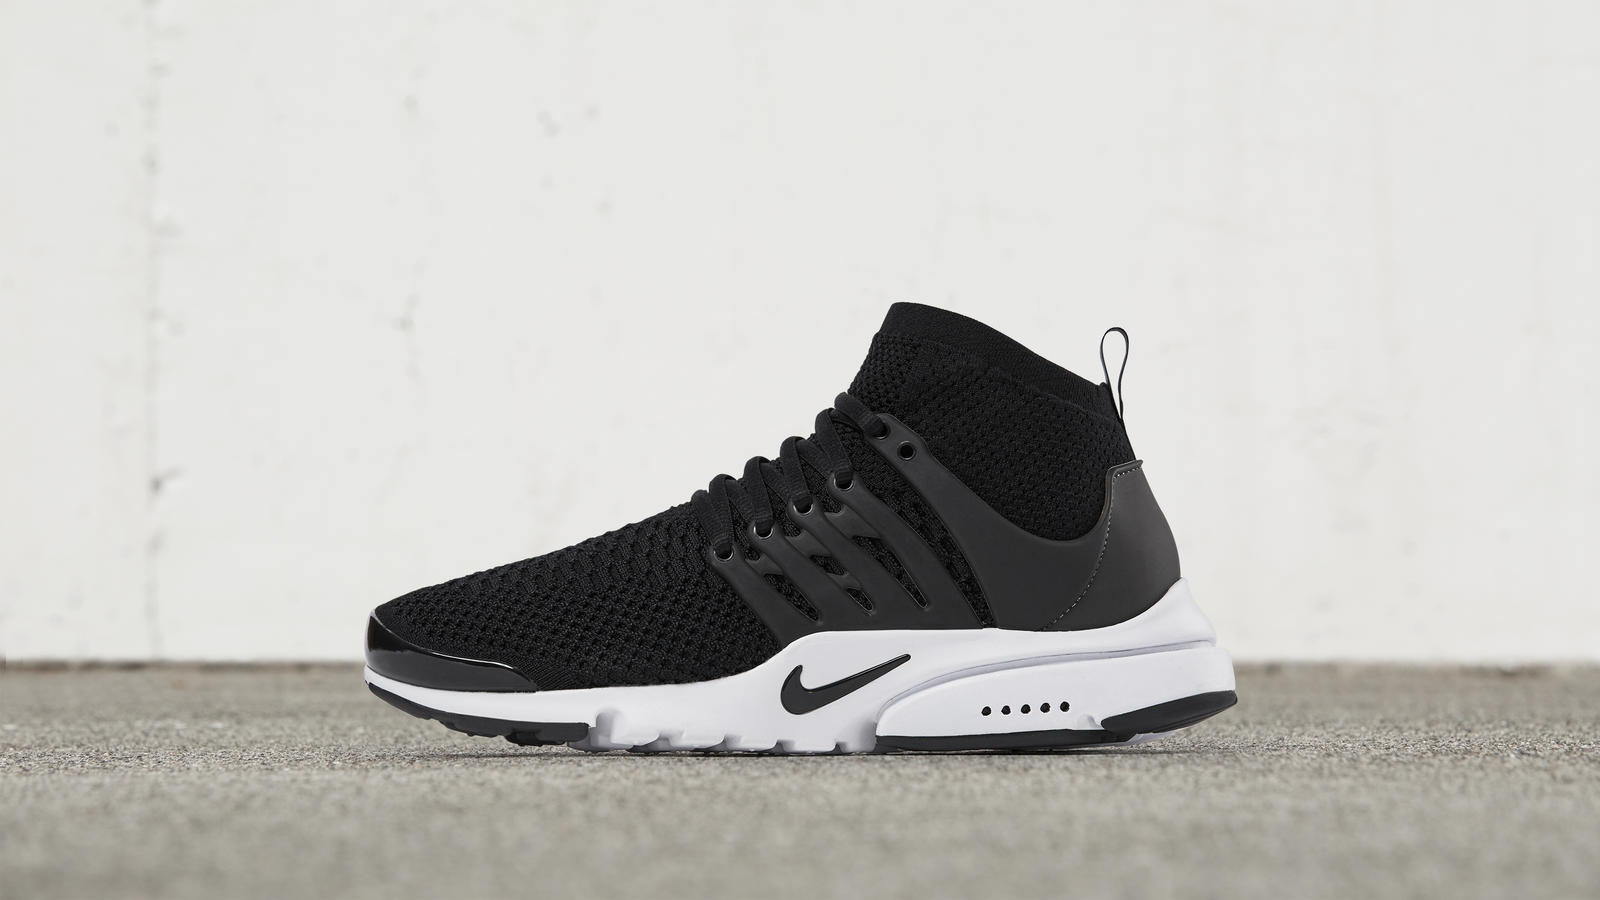 170410 footwear presto blk 0679 hd 1600